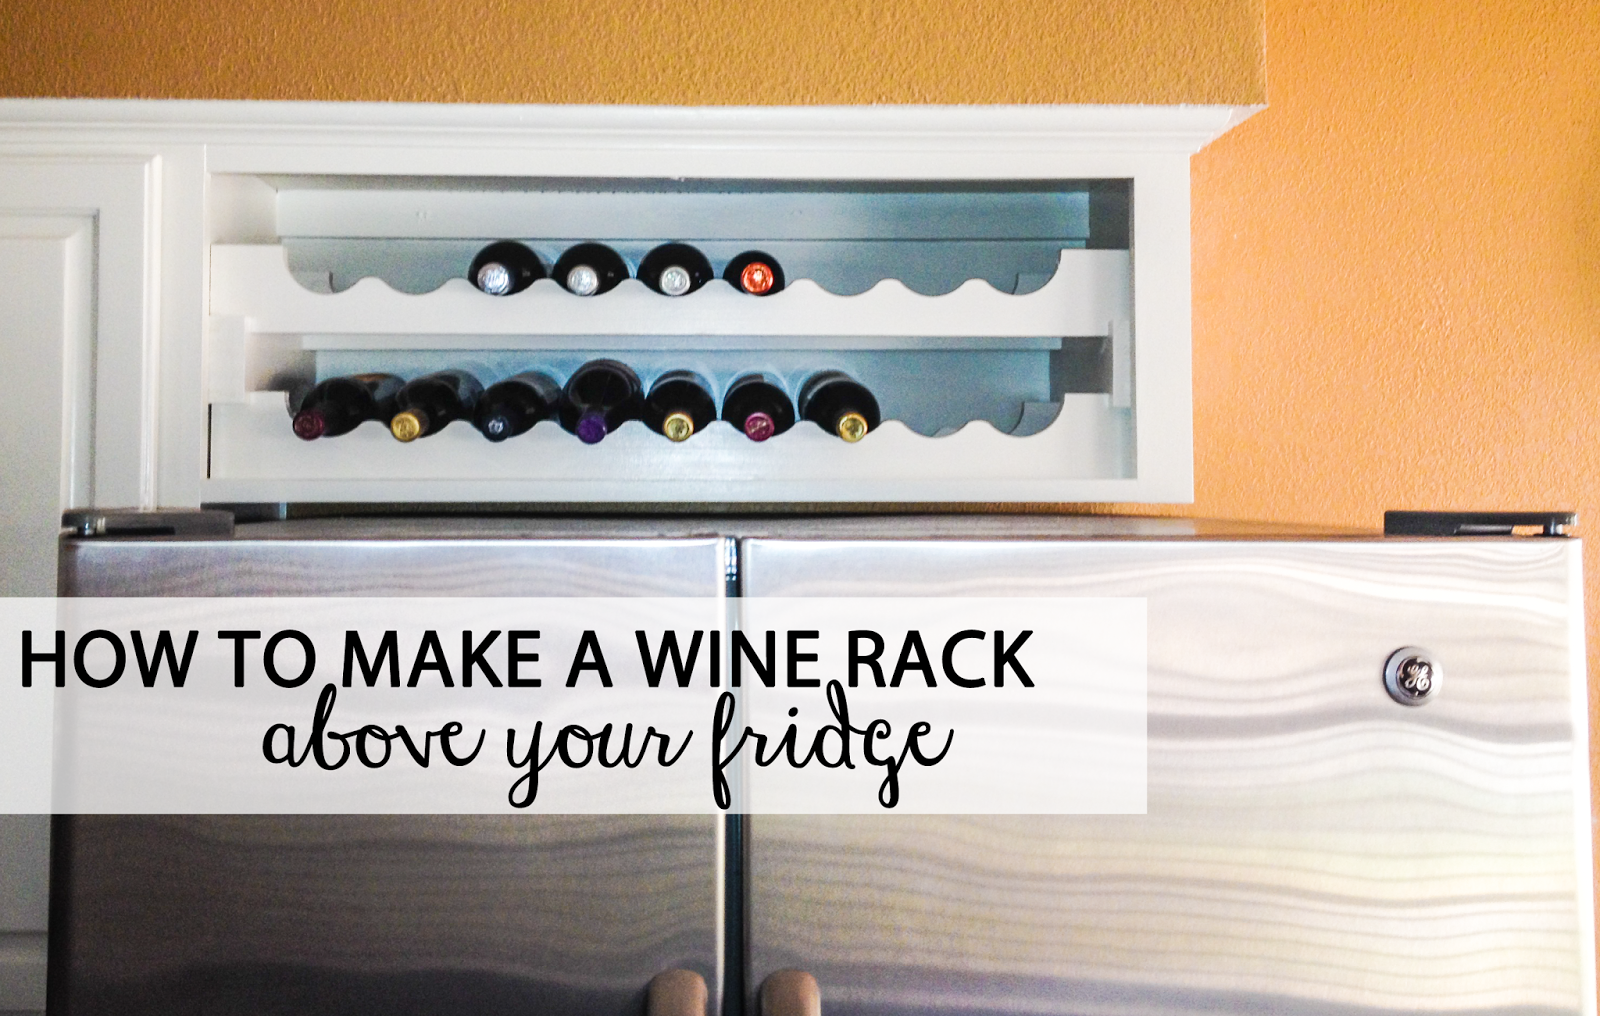 You Know That Useless Cabinet Above Your Fridge Turn It Into A Wine